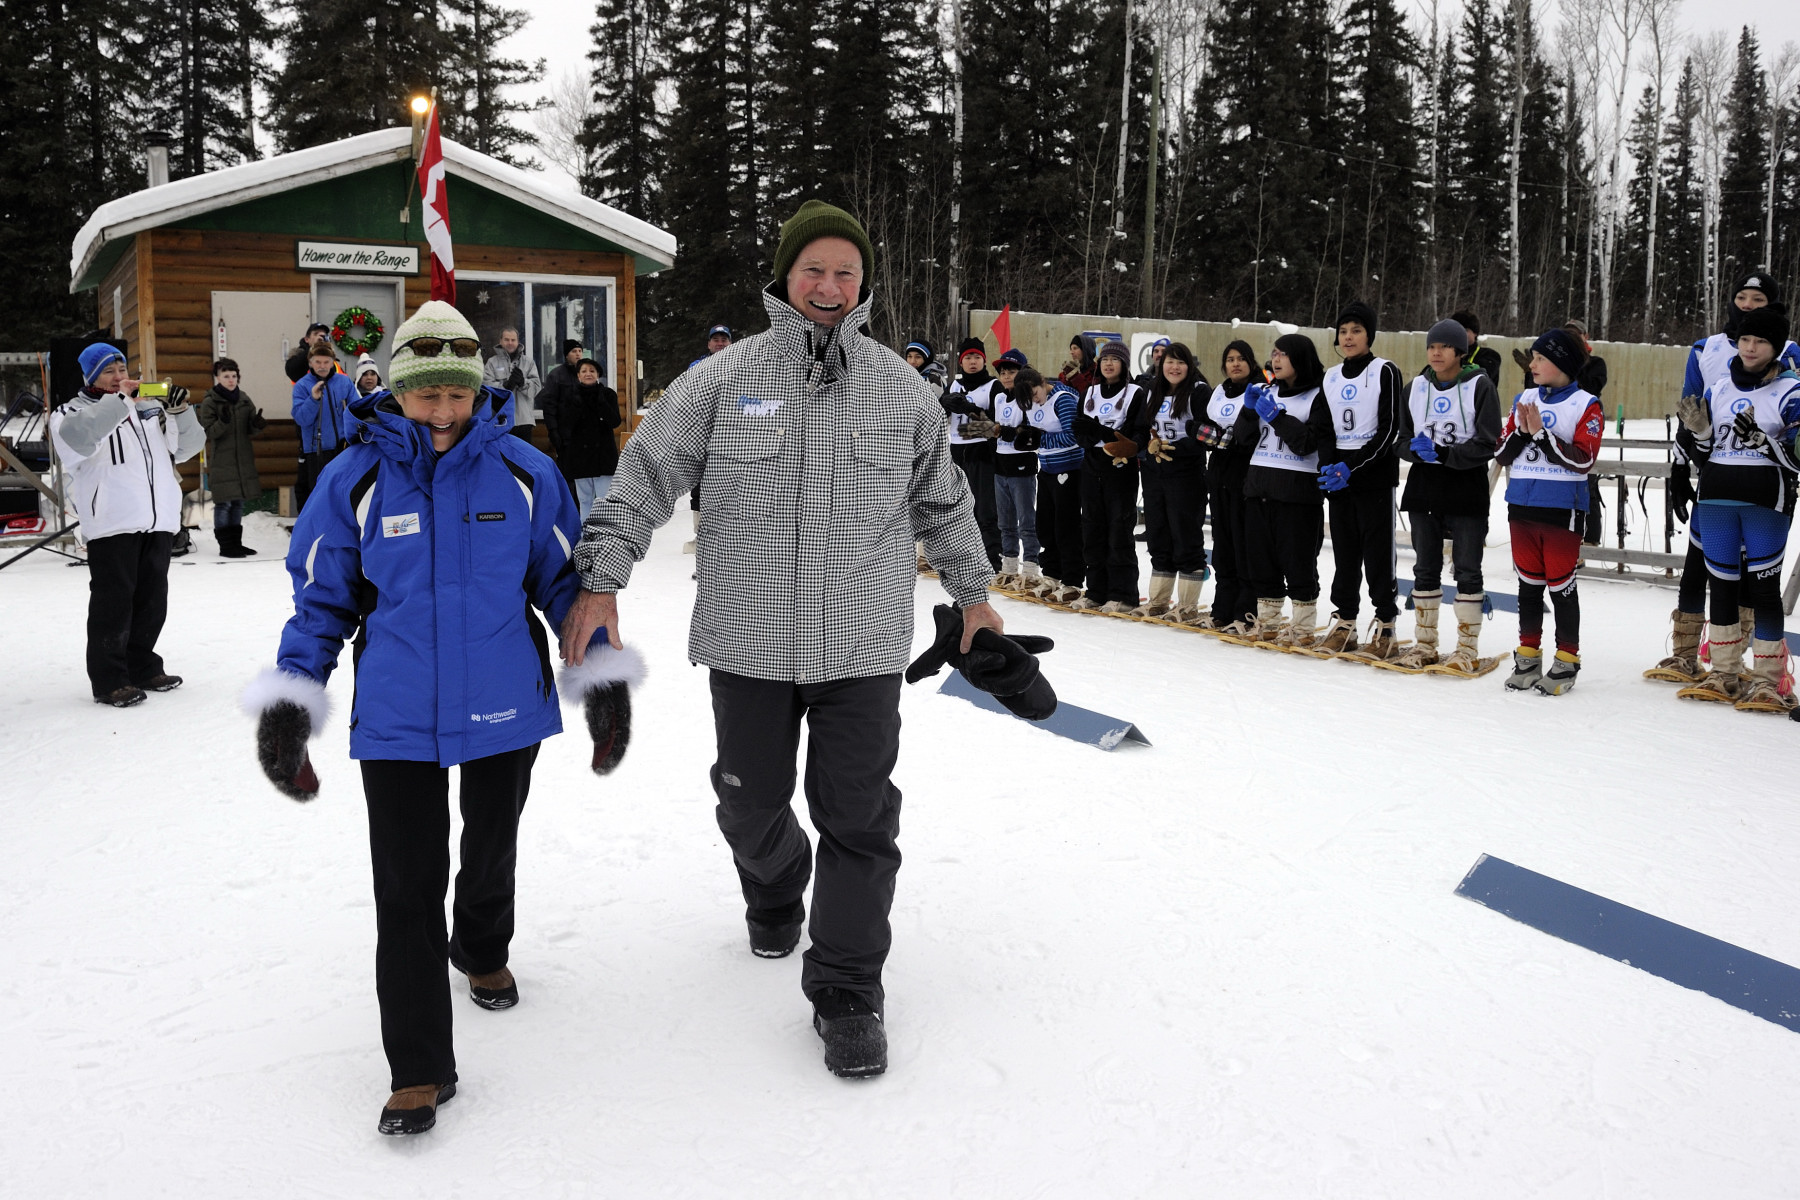 During their visit to the Hay River Ski Club, Their Excellencies had the opportunity to see athletes compete in the biathlon team tryouts in the hopes of attending the 22nd Arctic Winter Games.